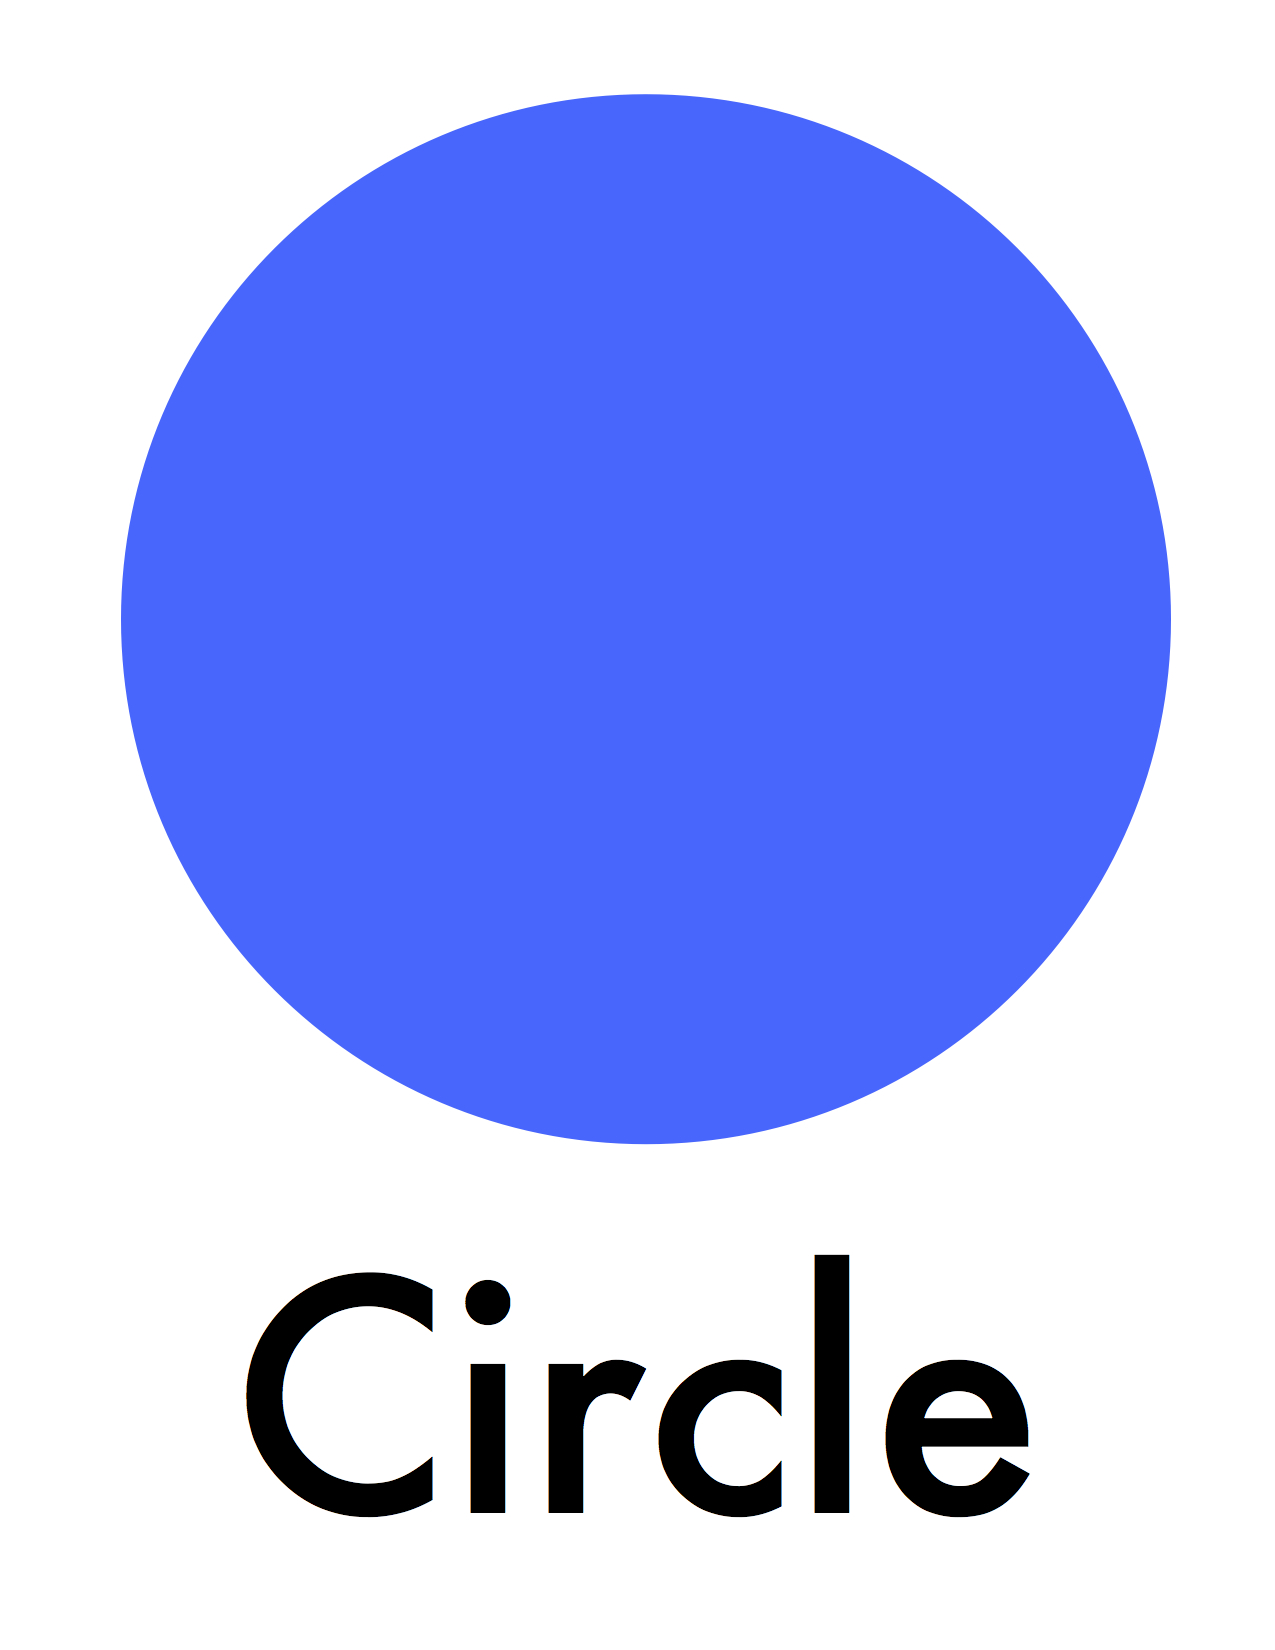 Circle shape pictures for kids